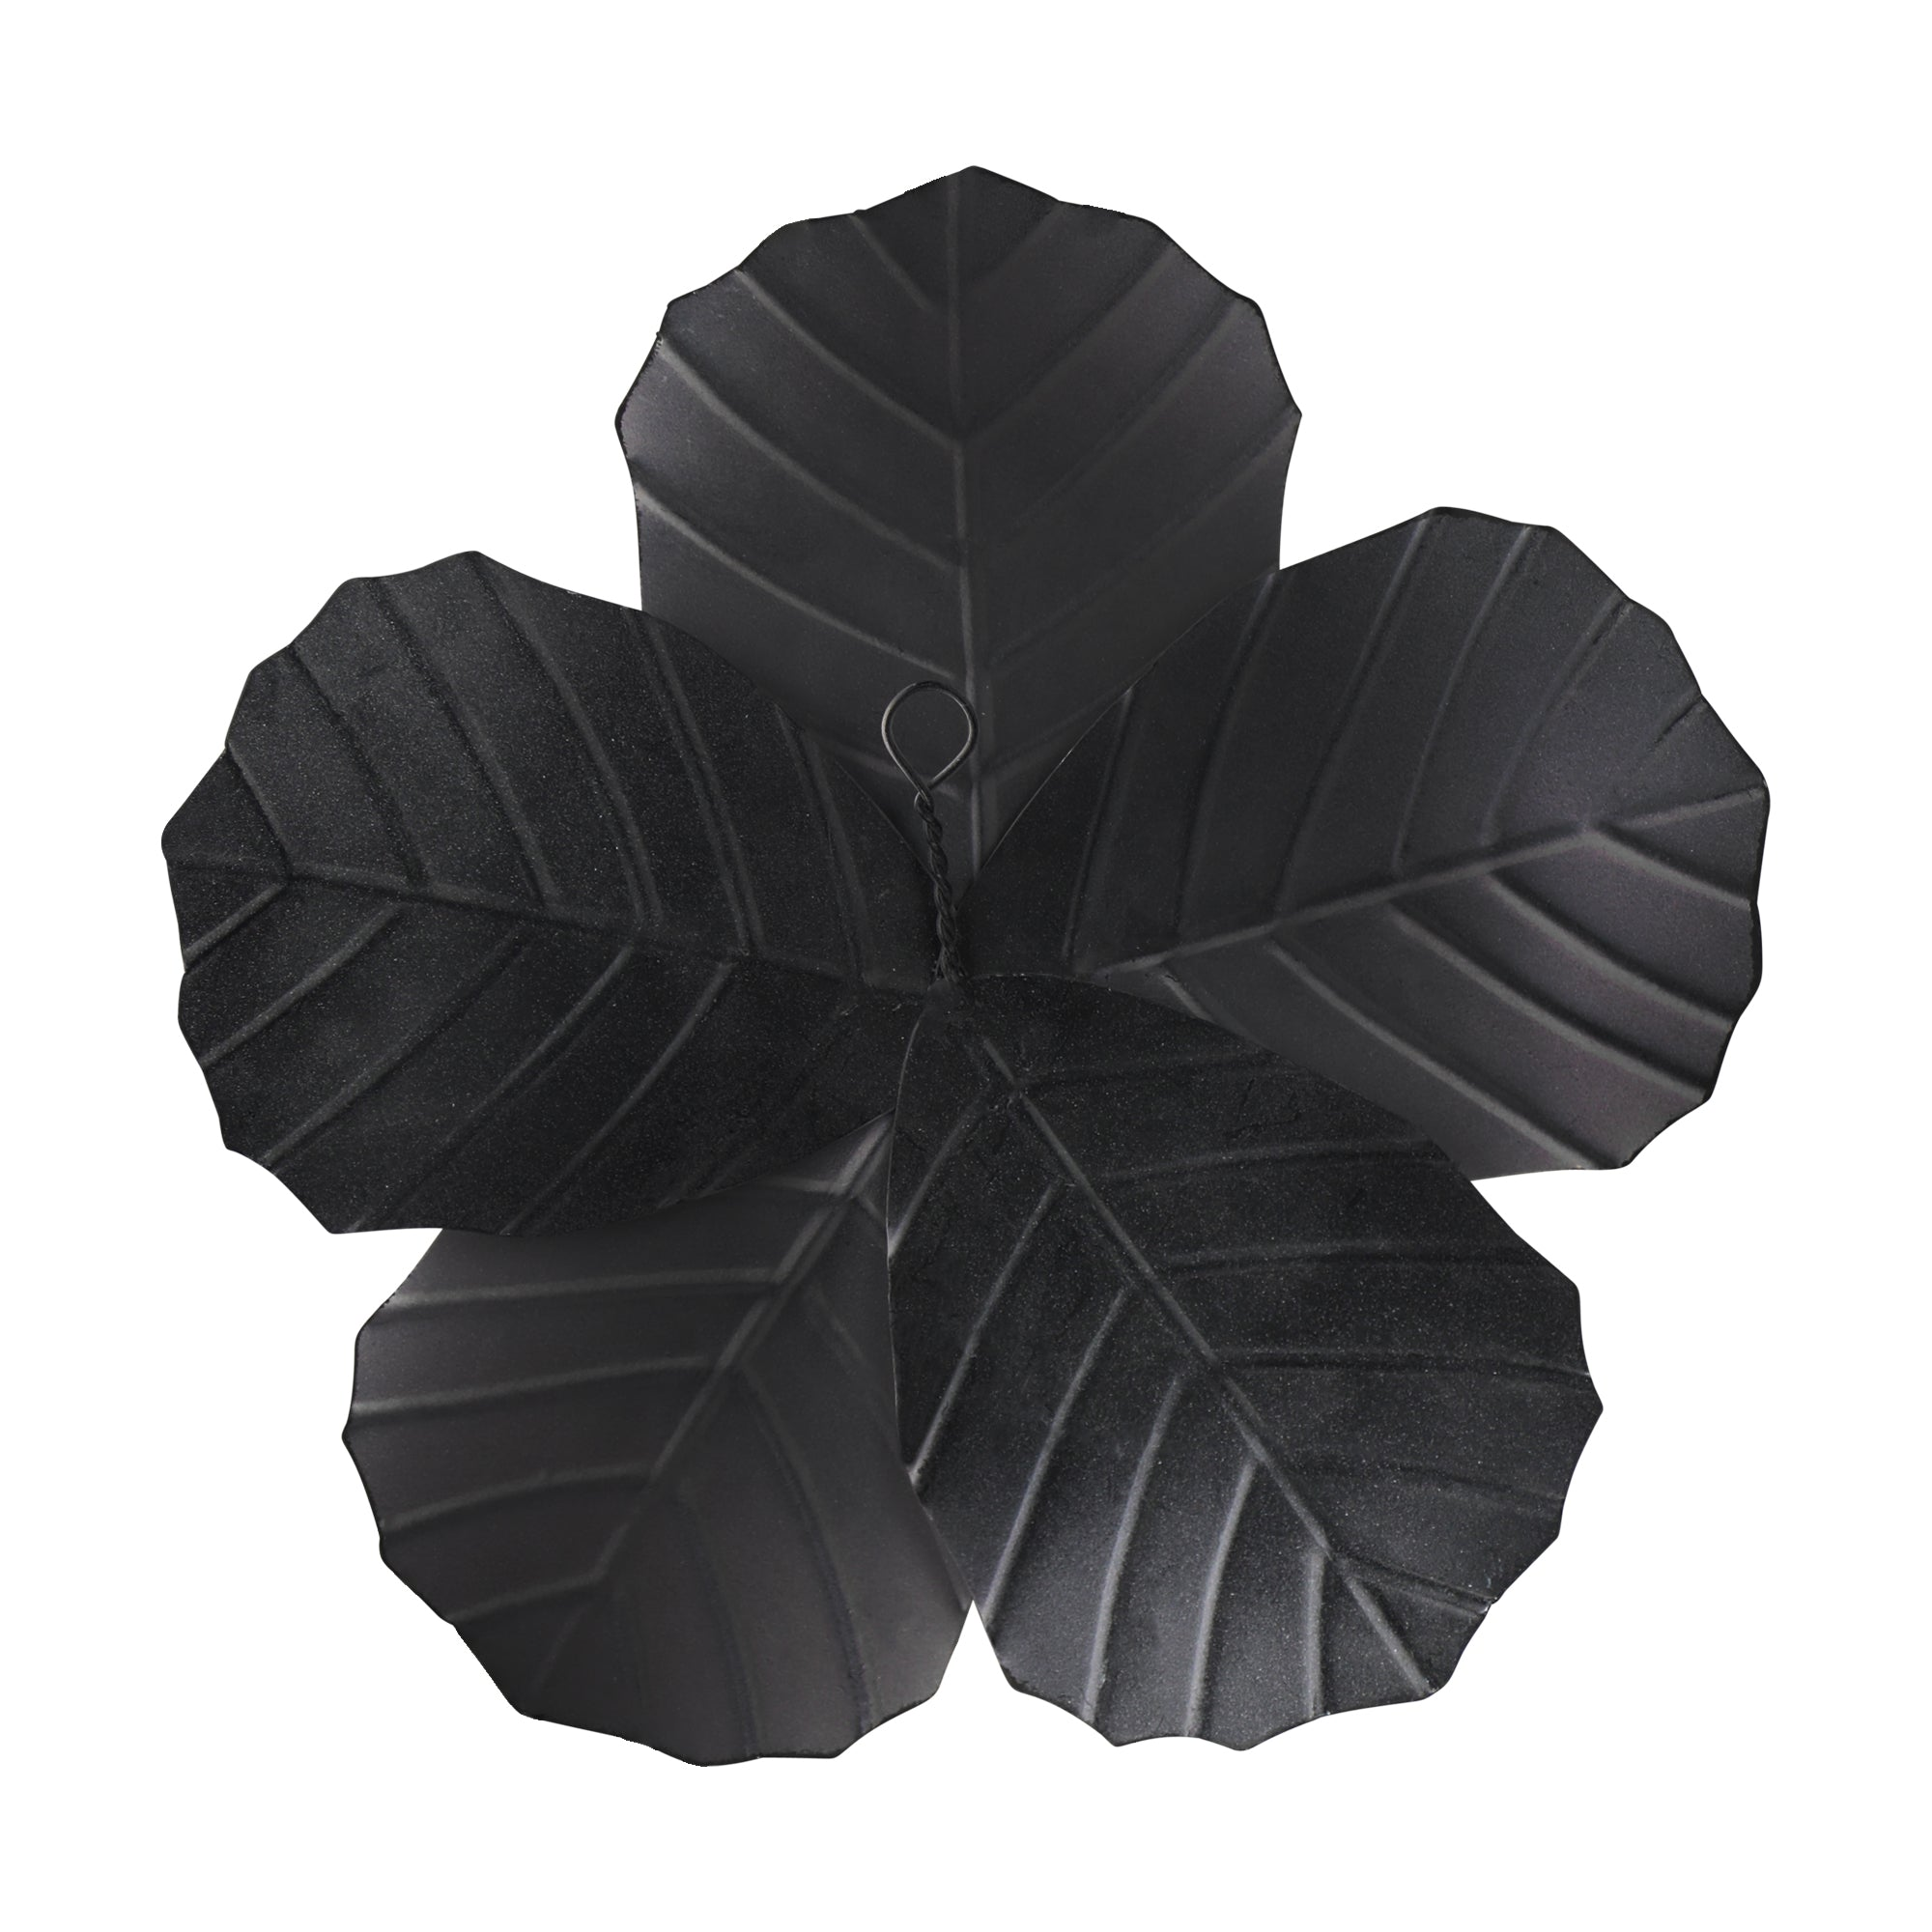 Flower Metal Wall Decor with Matte Finish